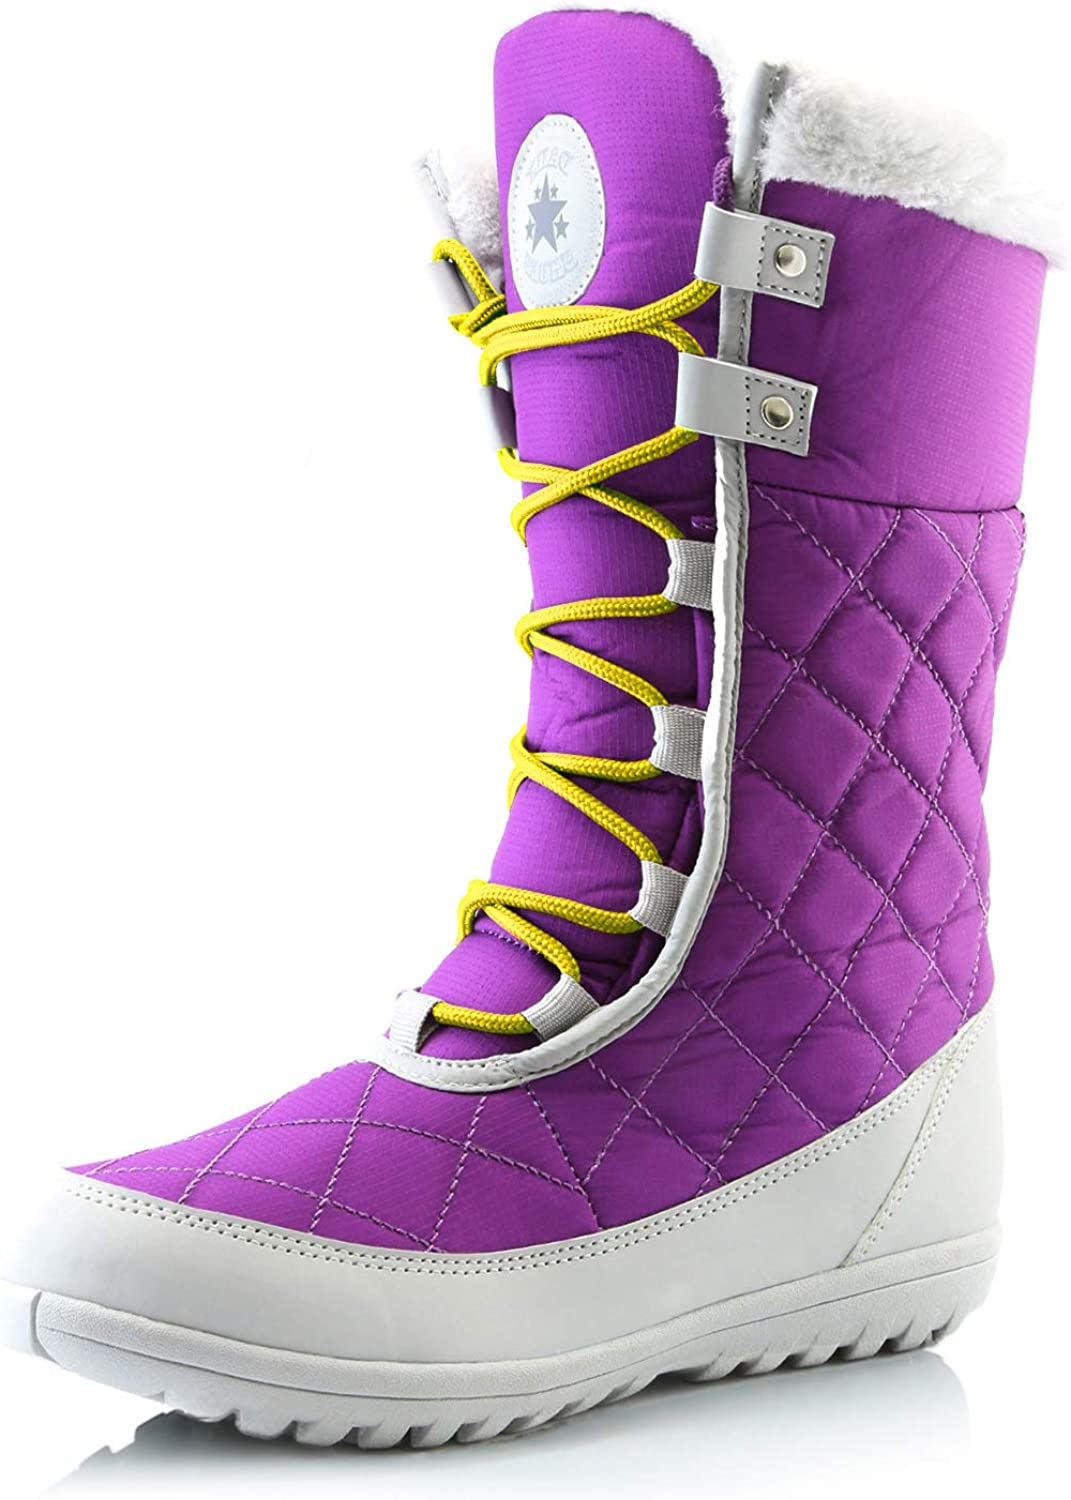 DailyShoes Women's Comfort Round Toe Mid Calf Flat Ankle High Eskimo Winter Fur Snow Boots, Yellow